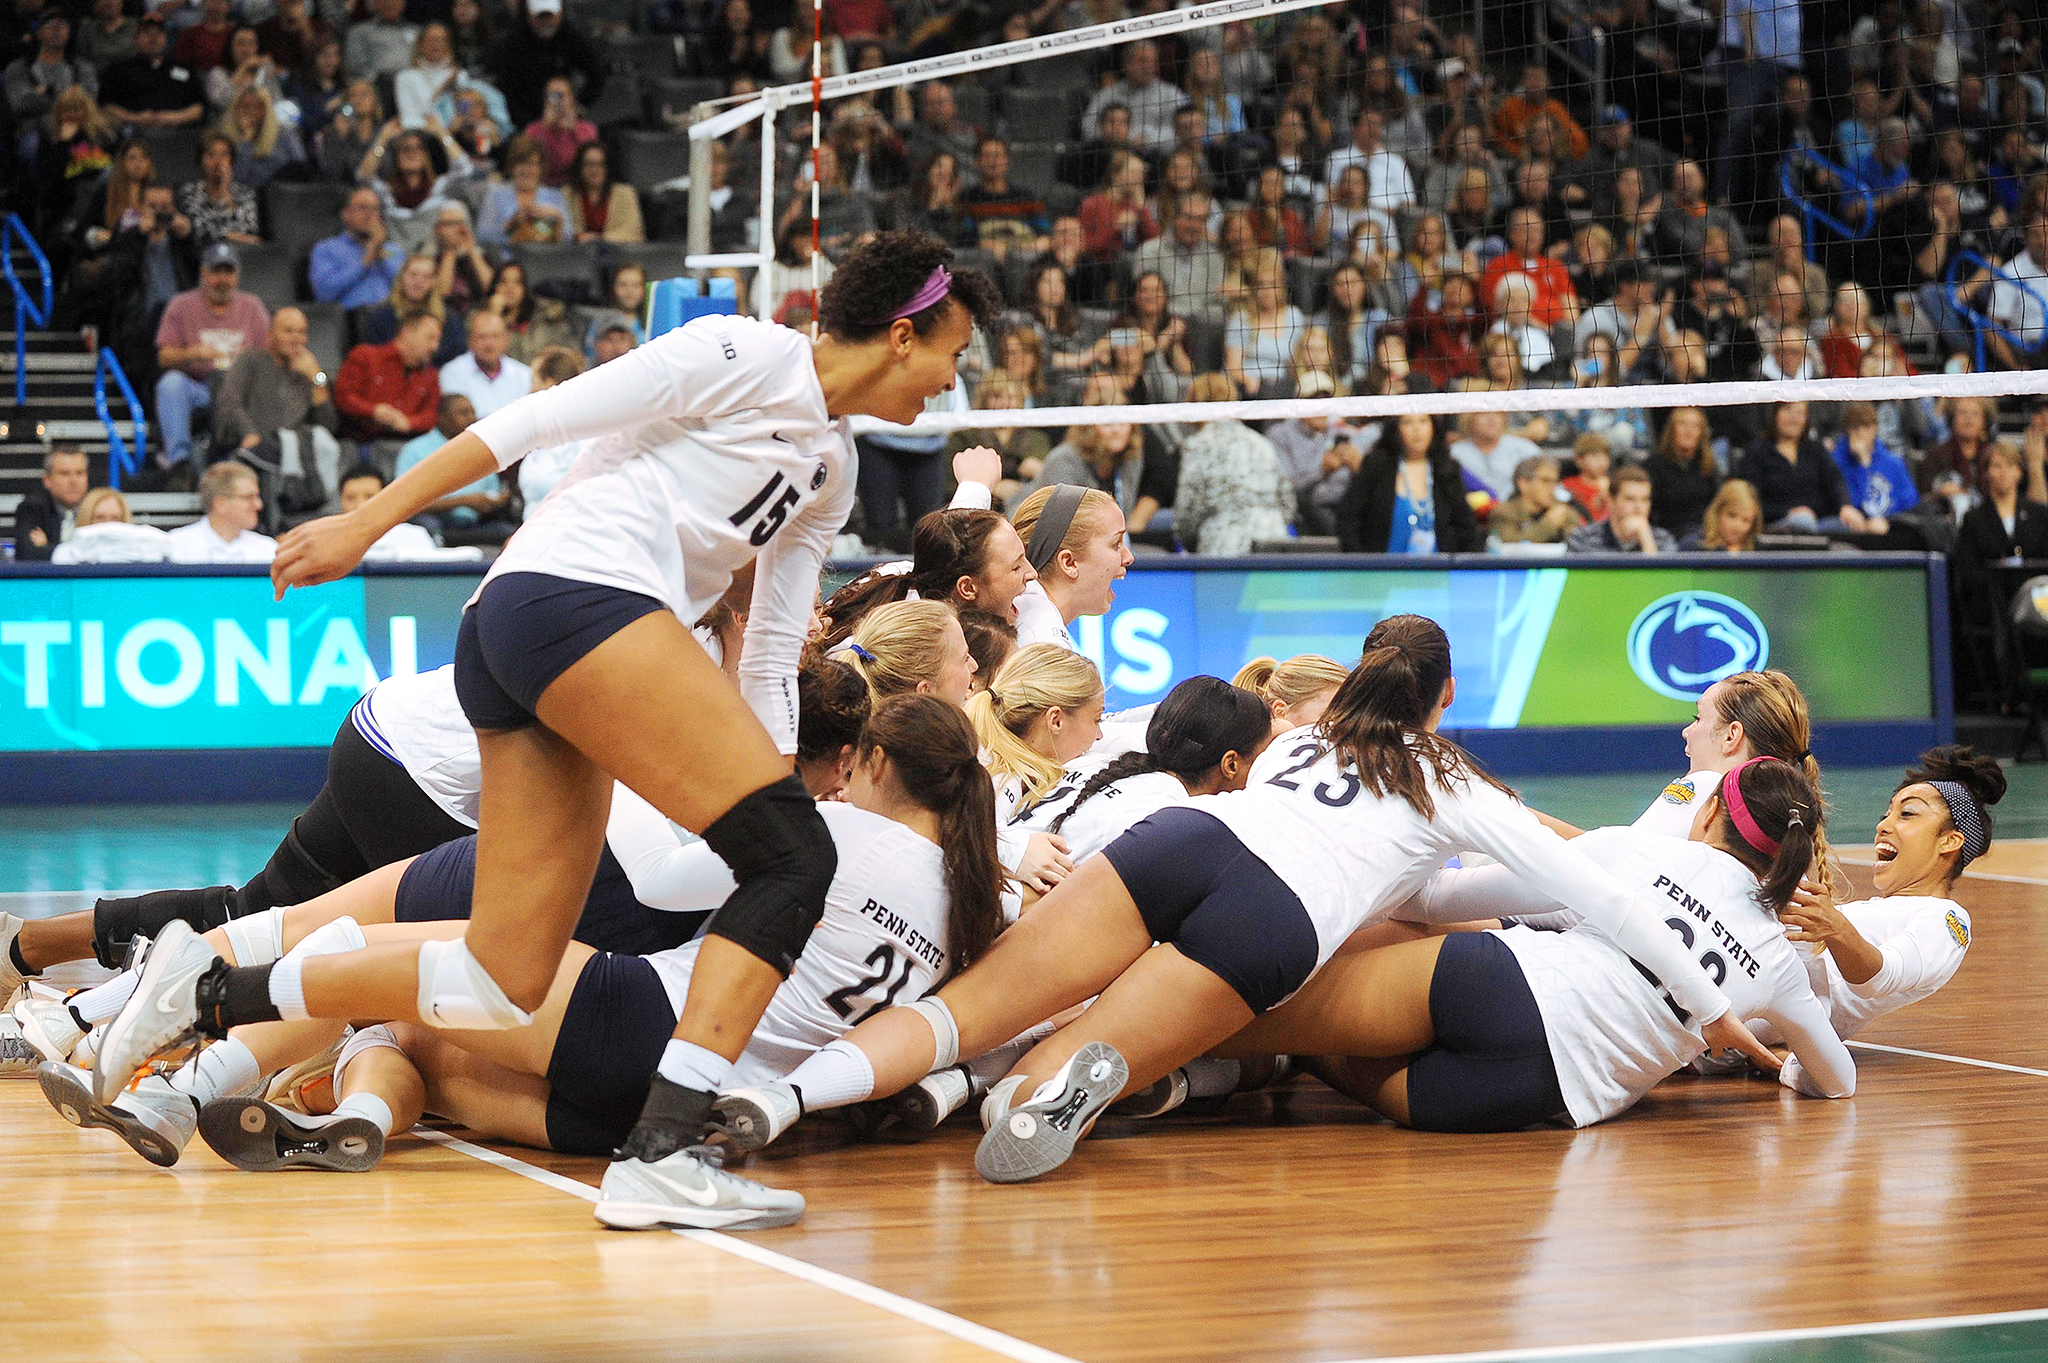 NCAA Volleyball Final: Penn State Celebrates